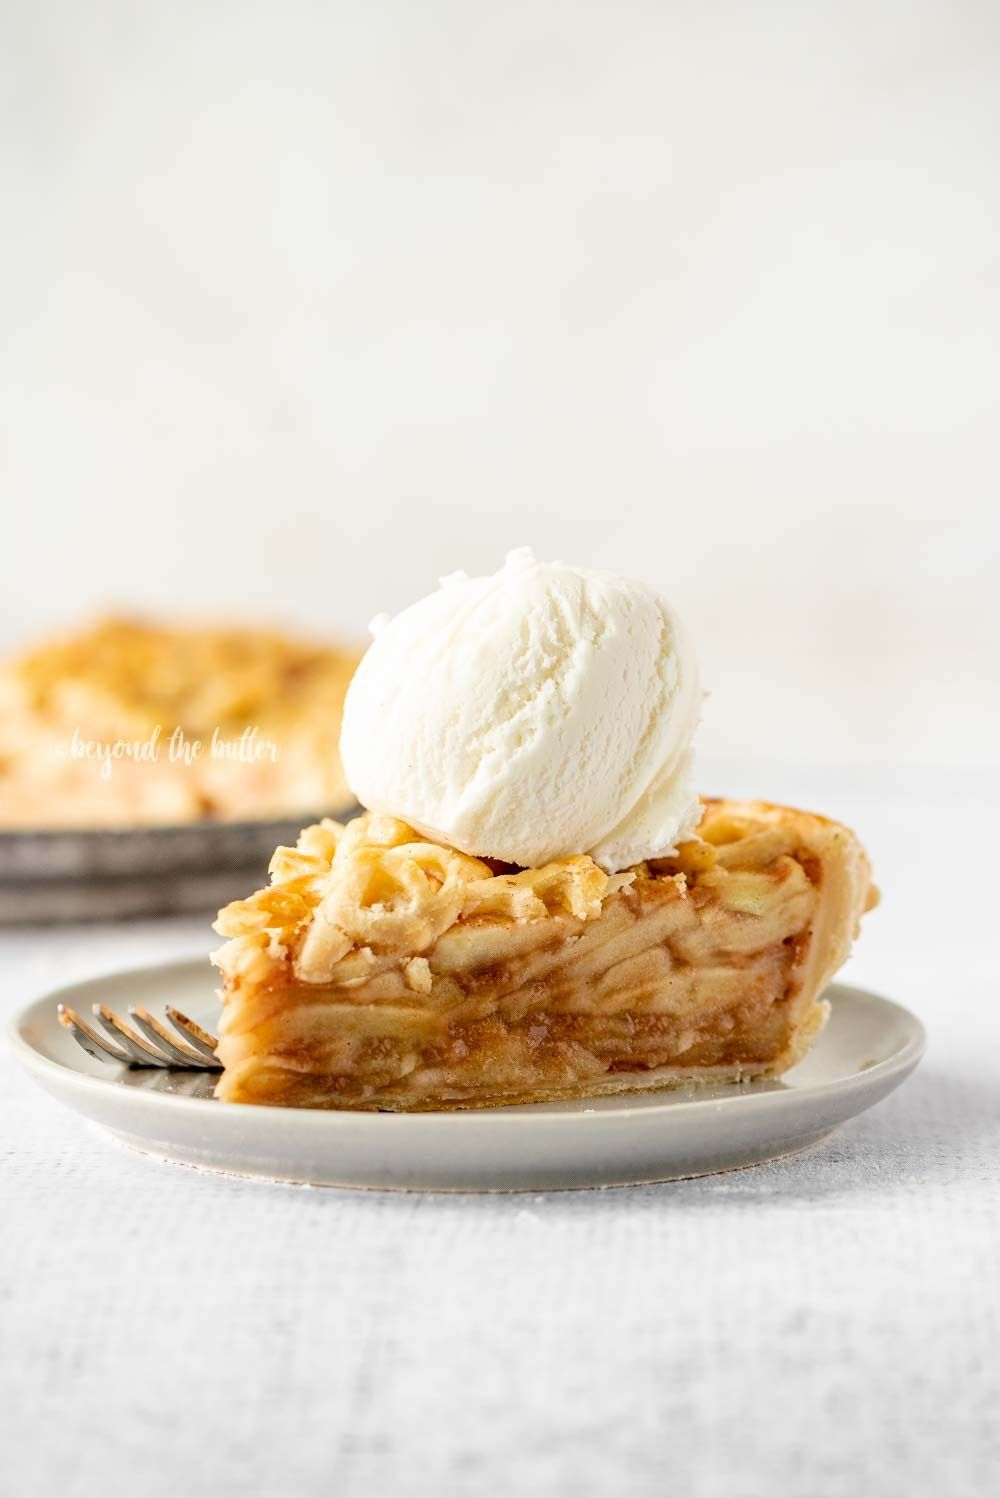 Easy Homemade Apple Pie - Beyond the Butter